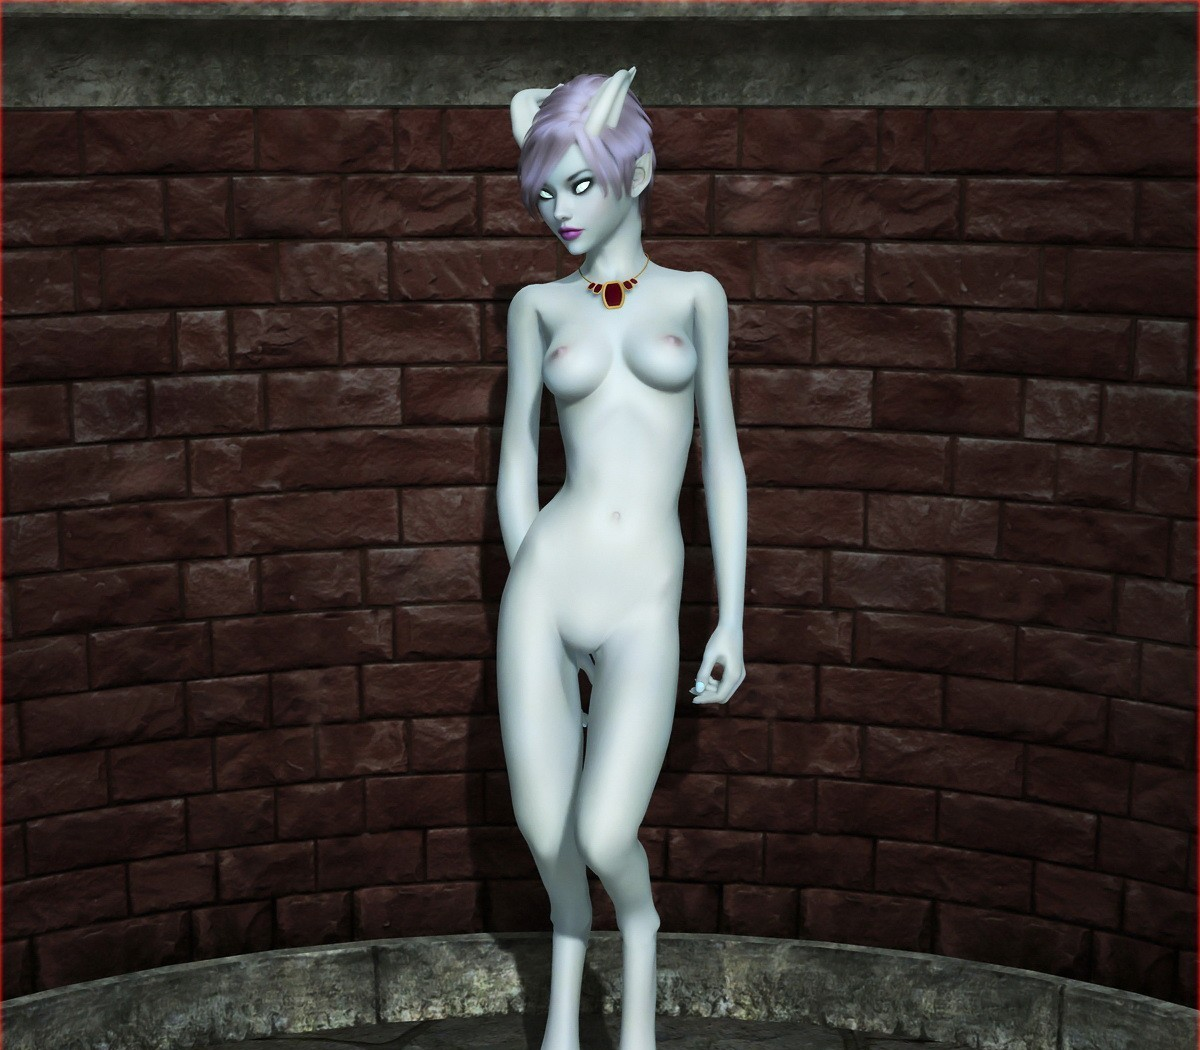 Draenei sexy naked video 3gp smut streaming